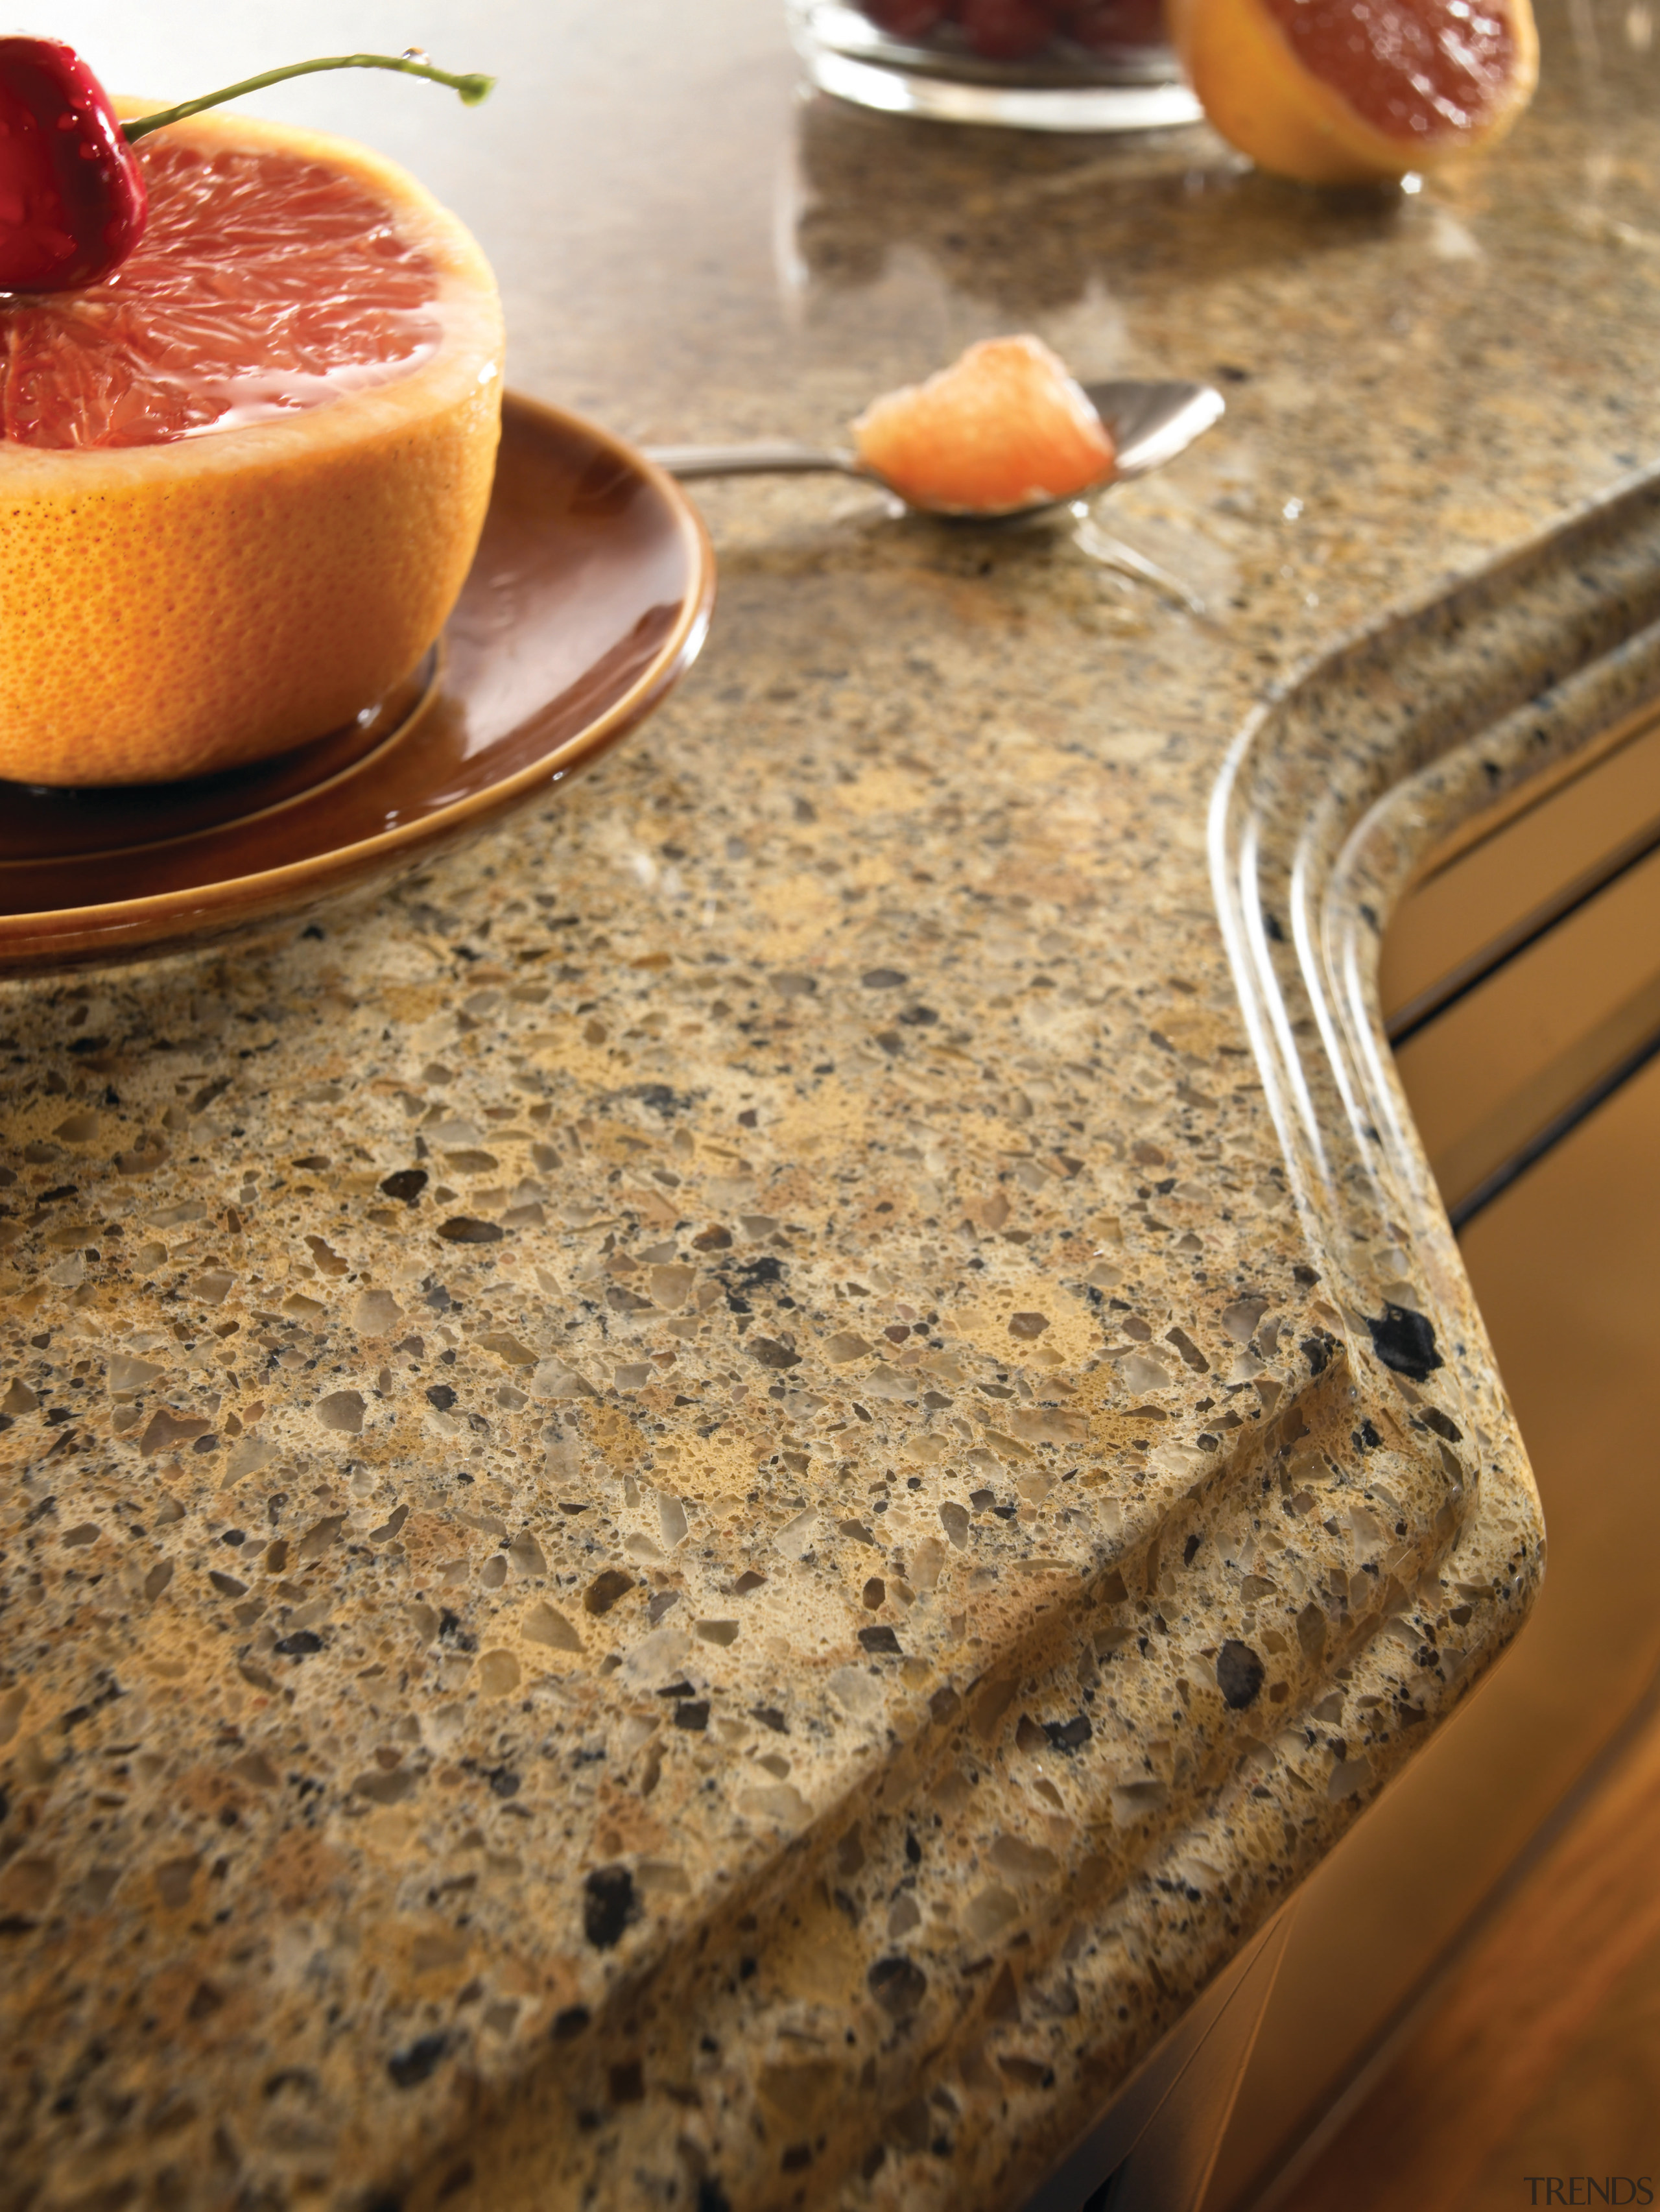 Other silestone surfaces include, Koan and Gedastu from brown, orange